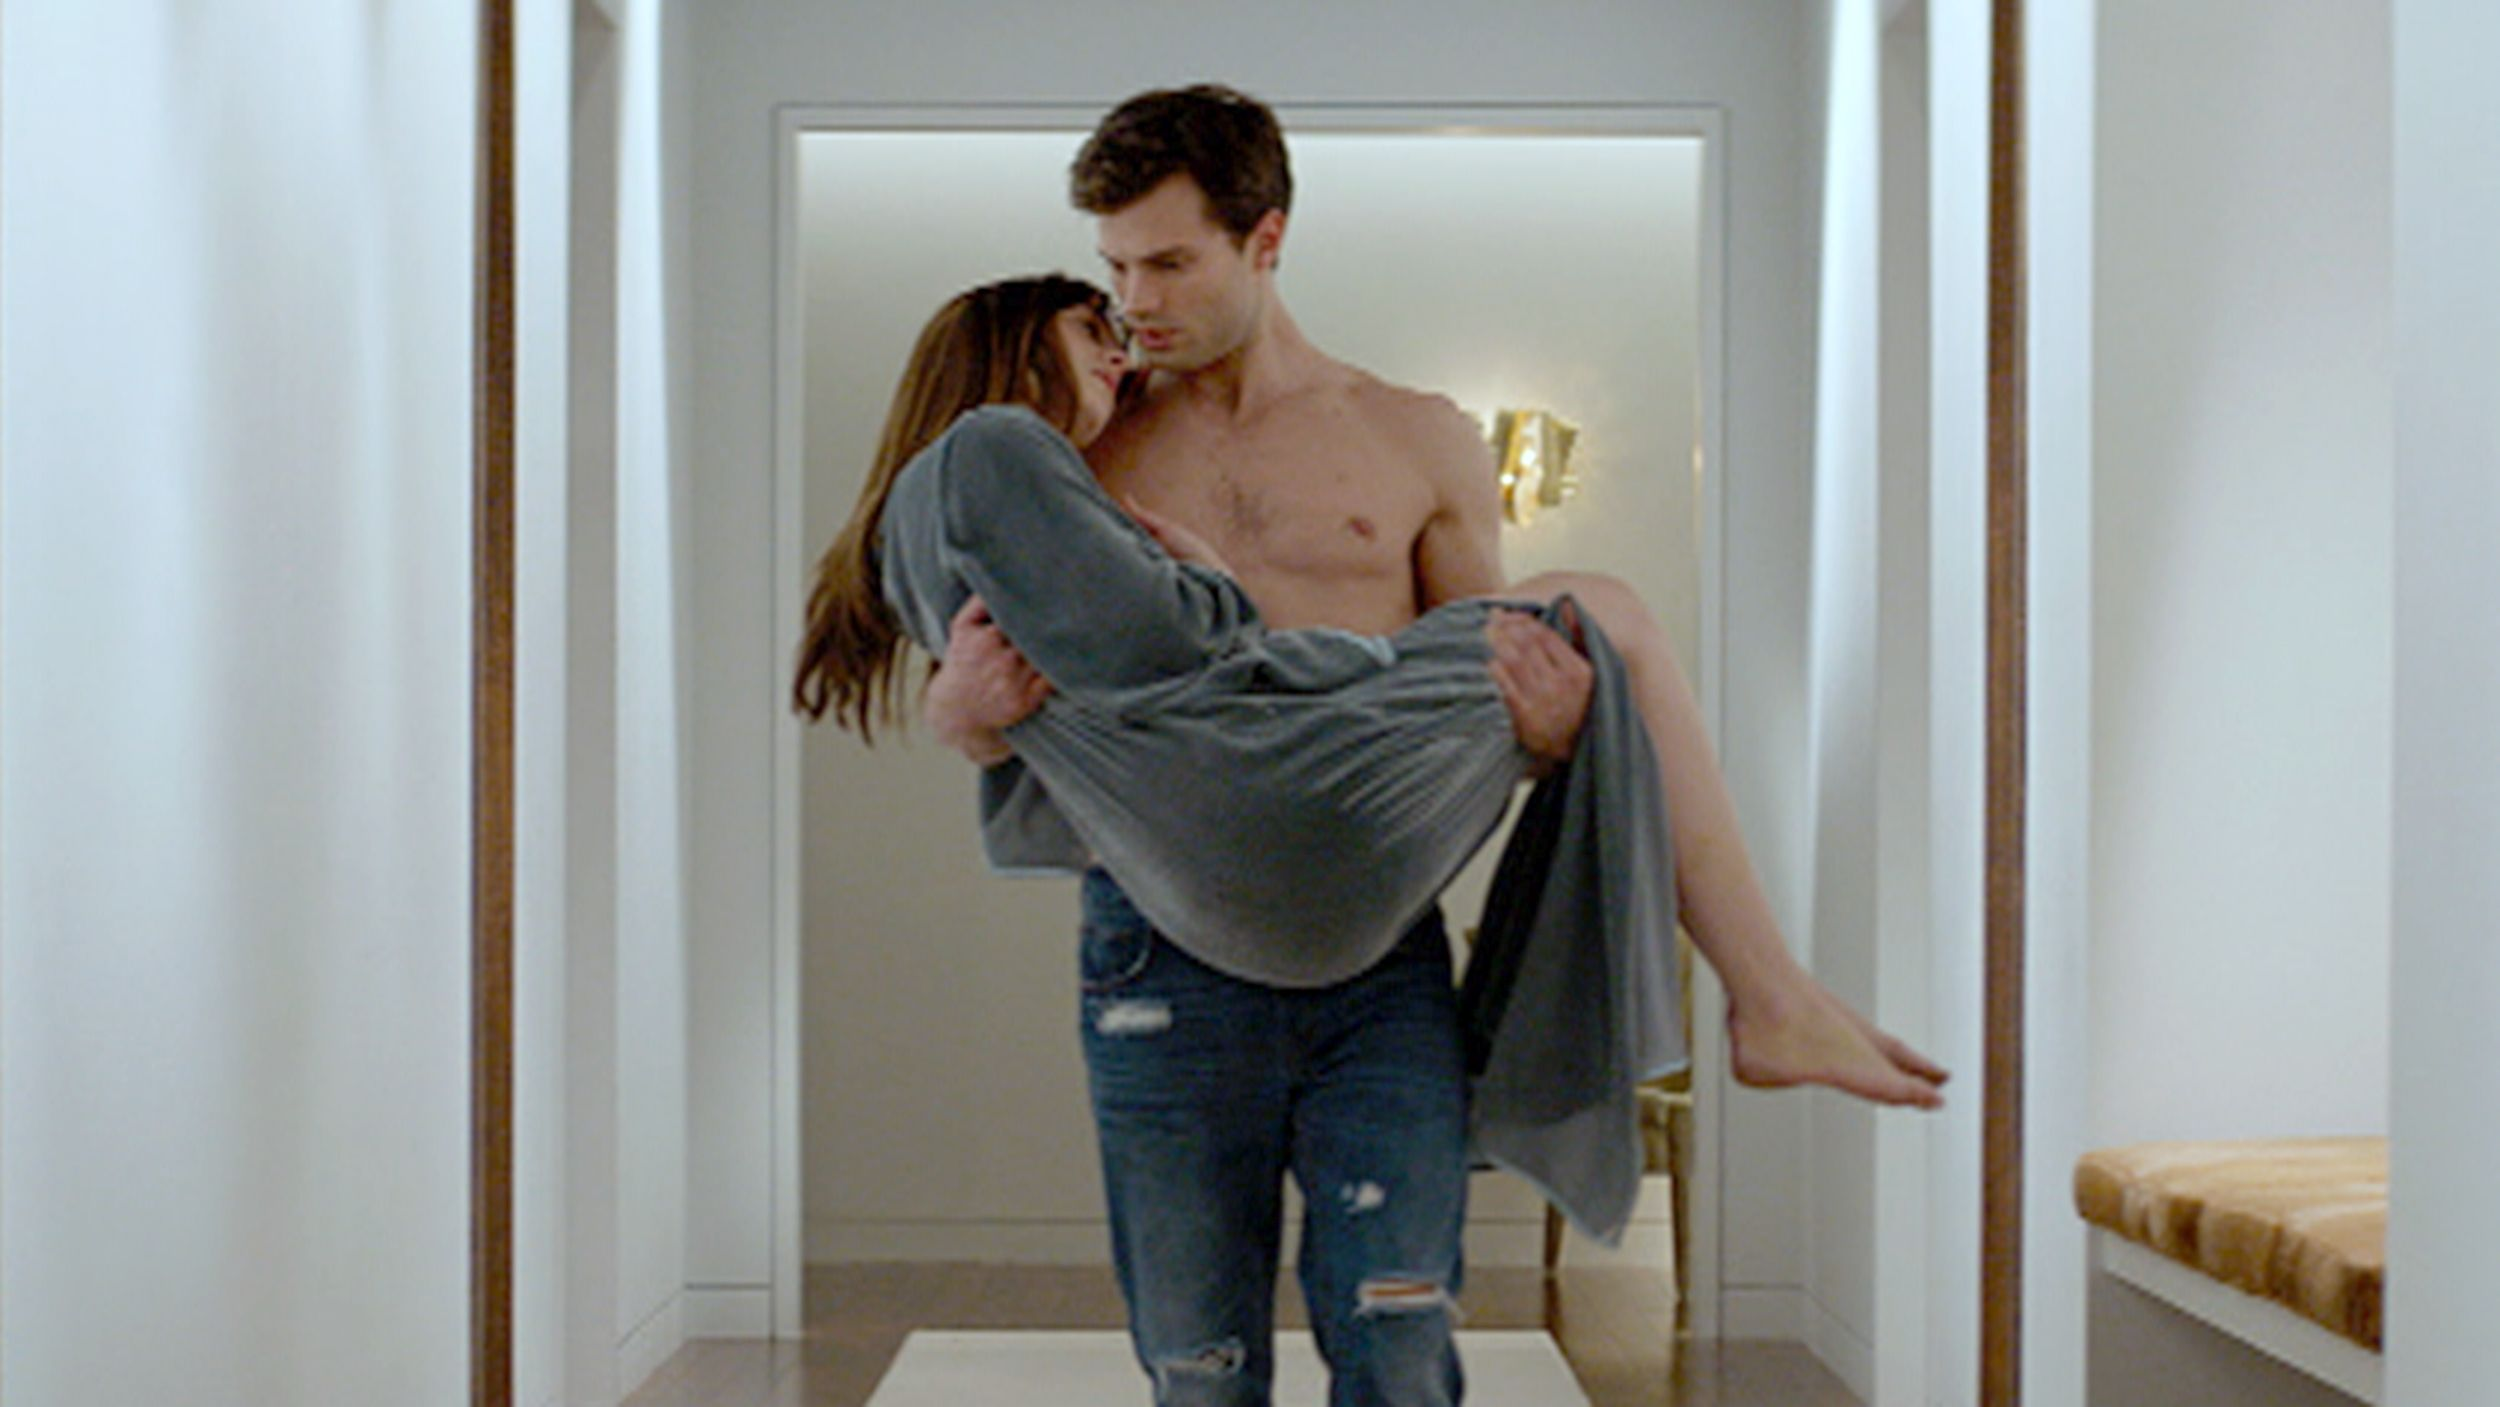 Not a date movie: Why 'Fifty Shades' will be a girls' night hit